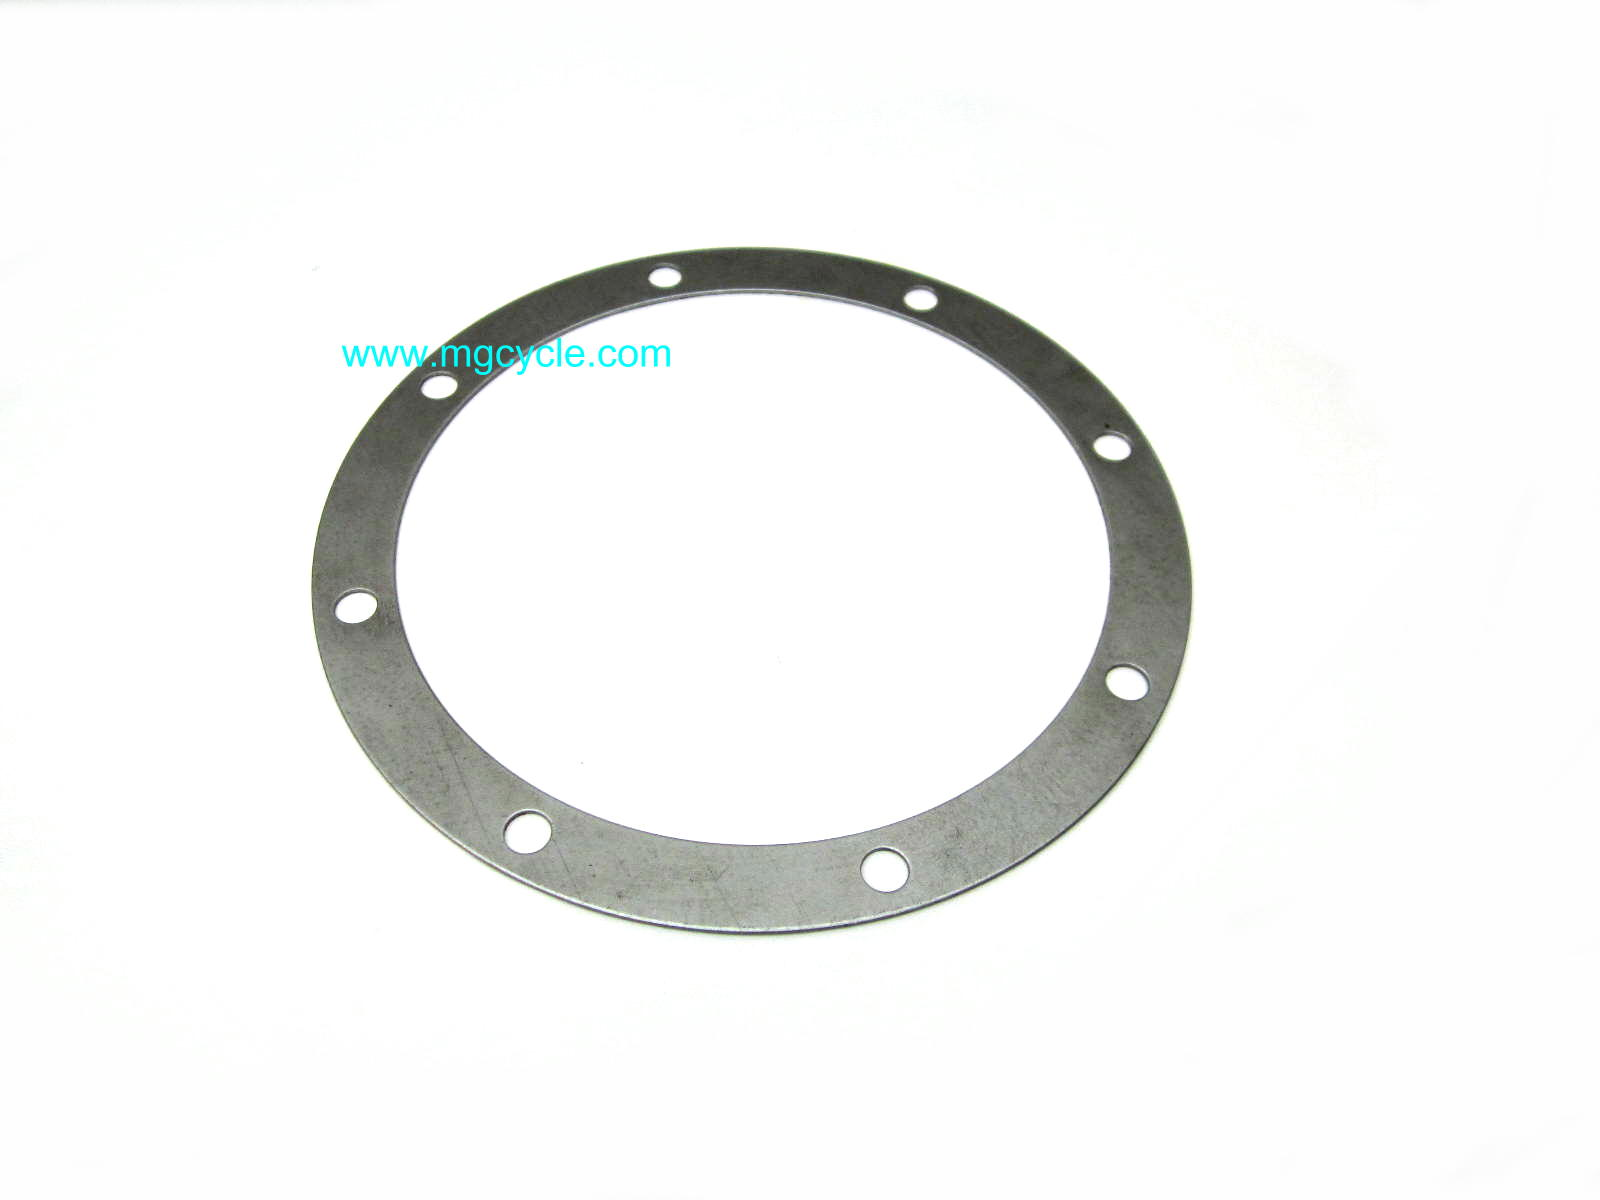 Rear drive box shim, large, 1.0 mm Disc brake